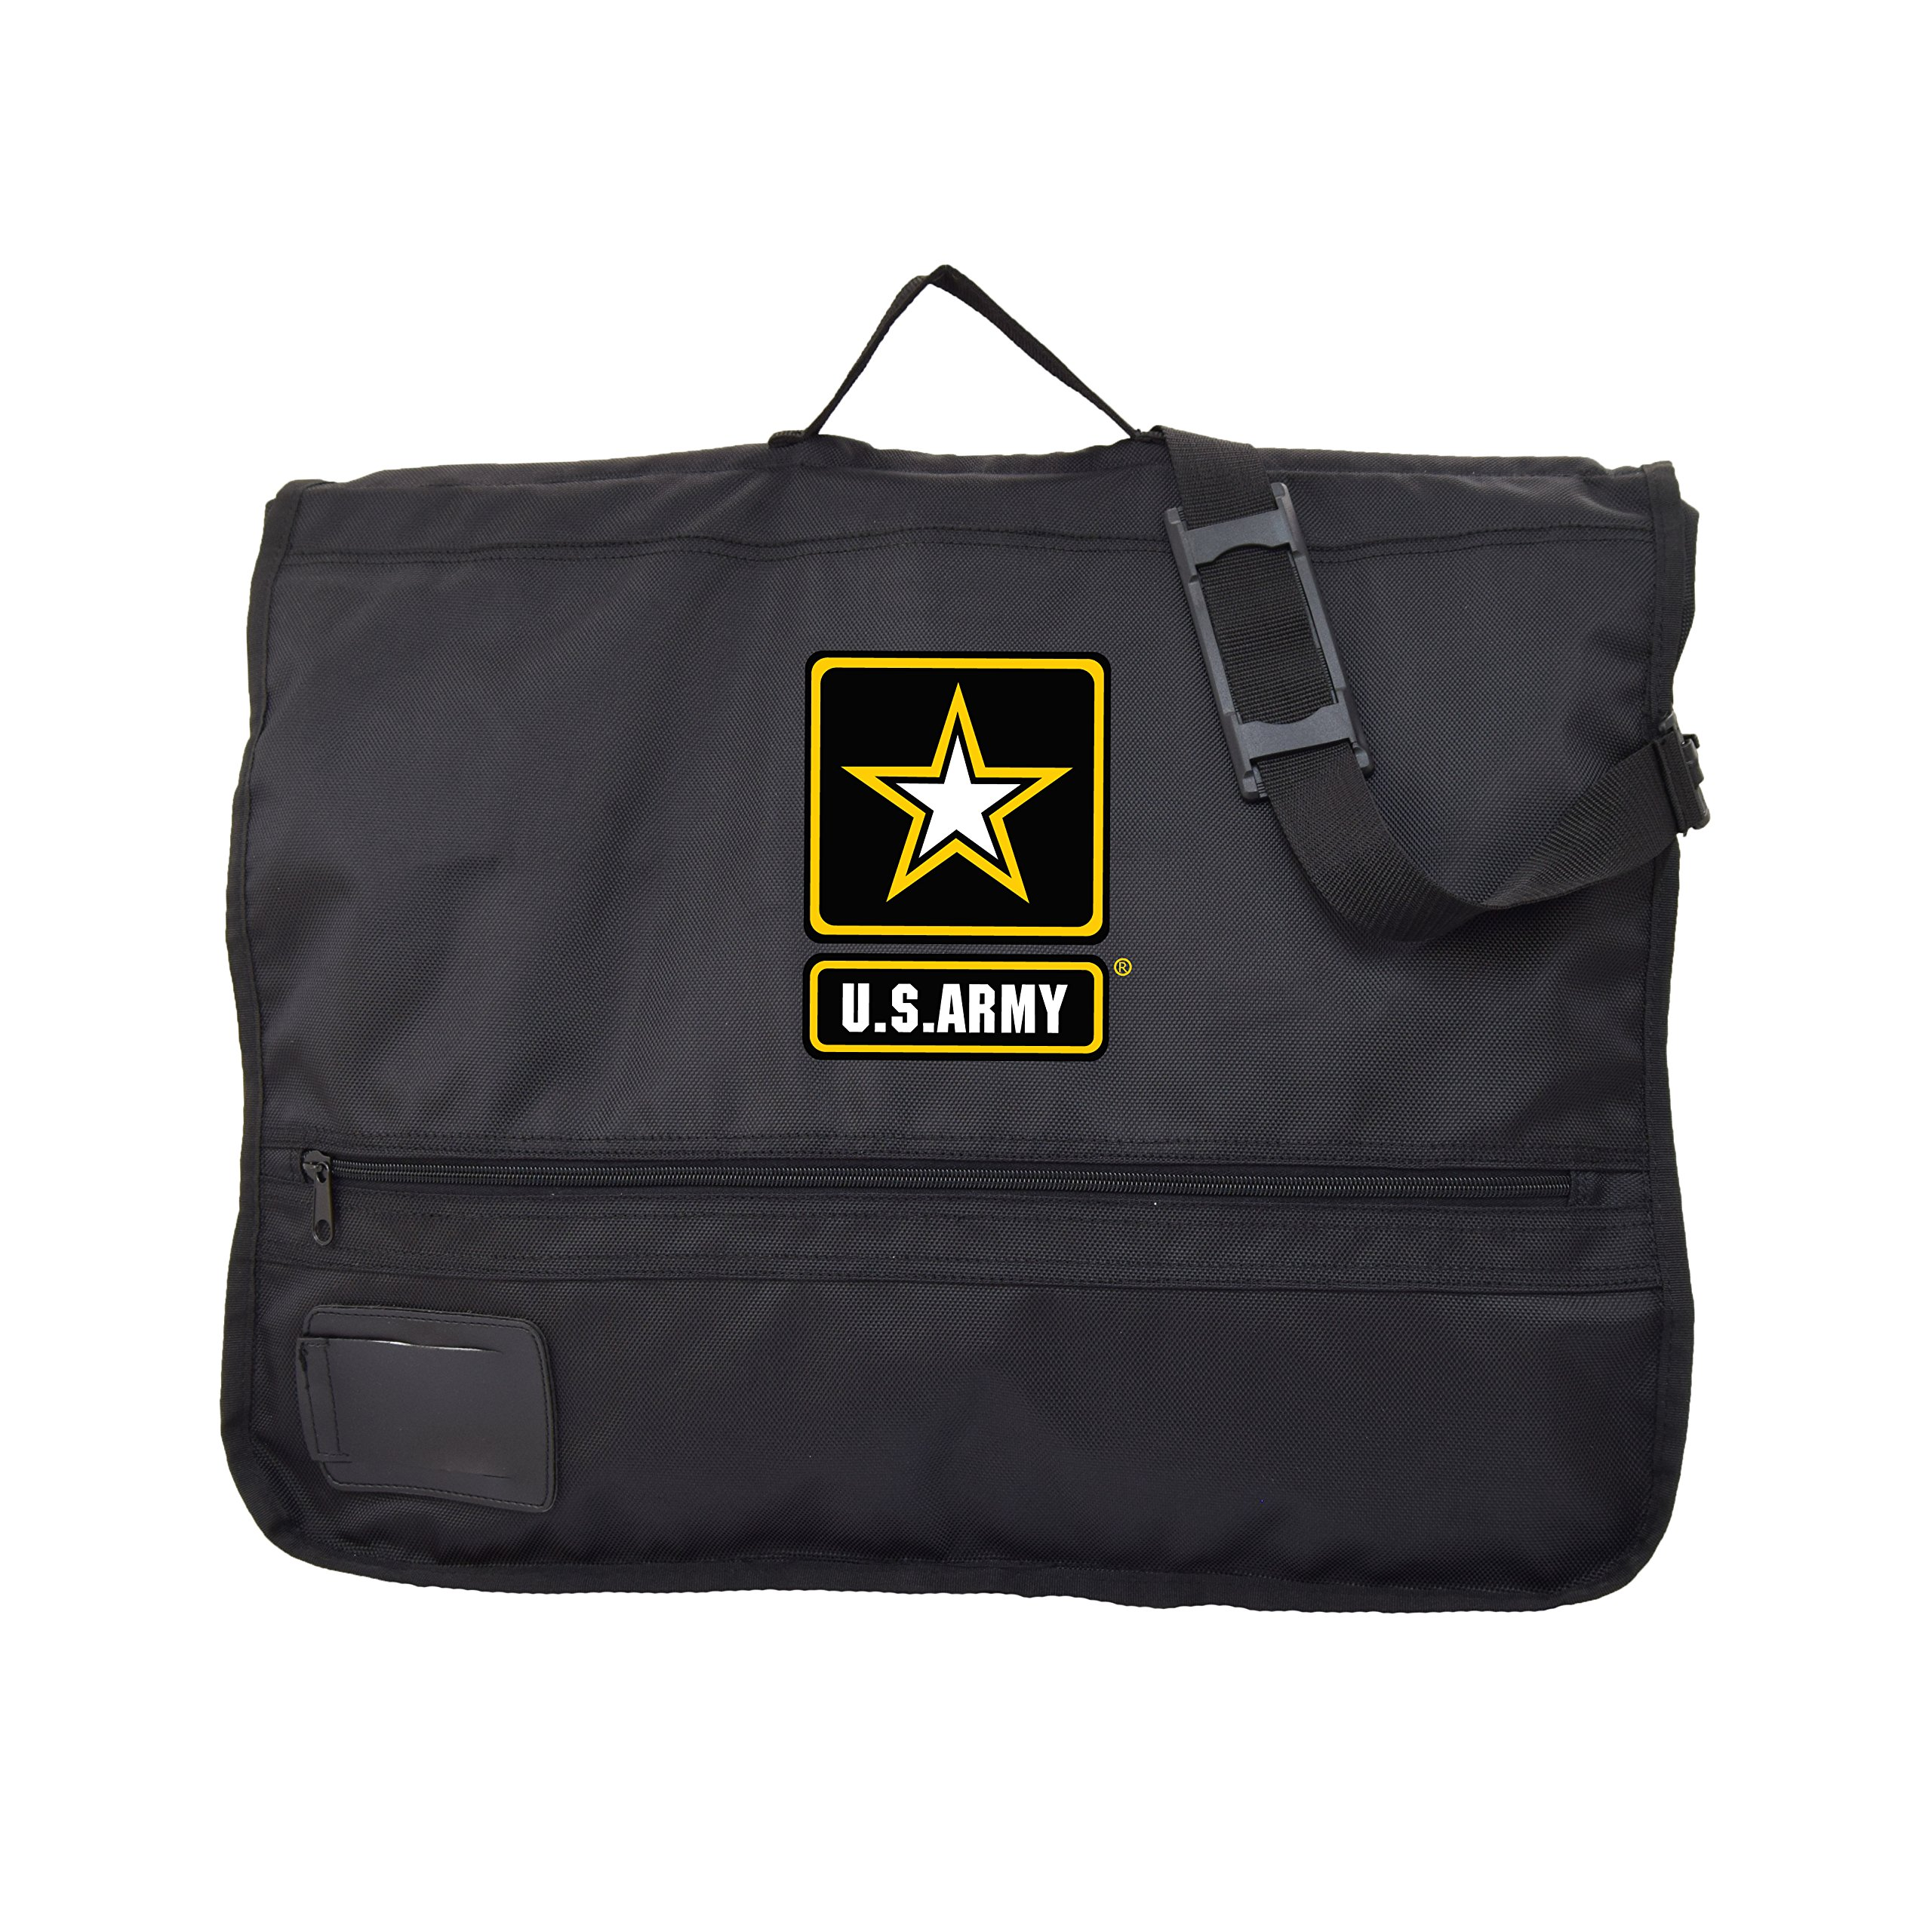 US ARMY Hanging Garment Bag